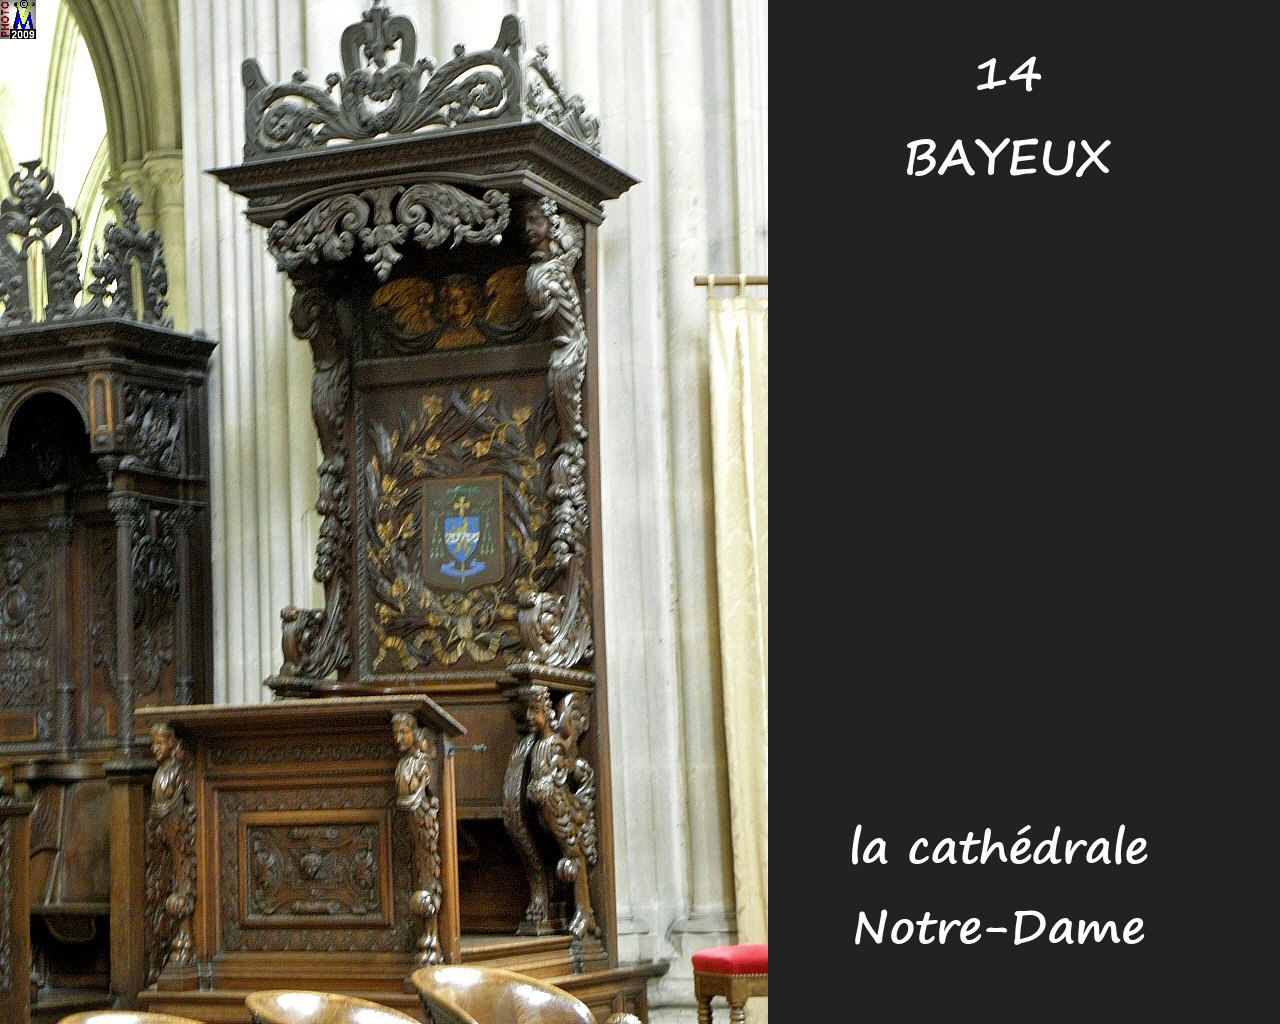 14BAYEUX_cathedrale_244.jpg